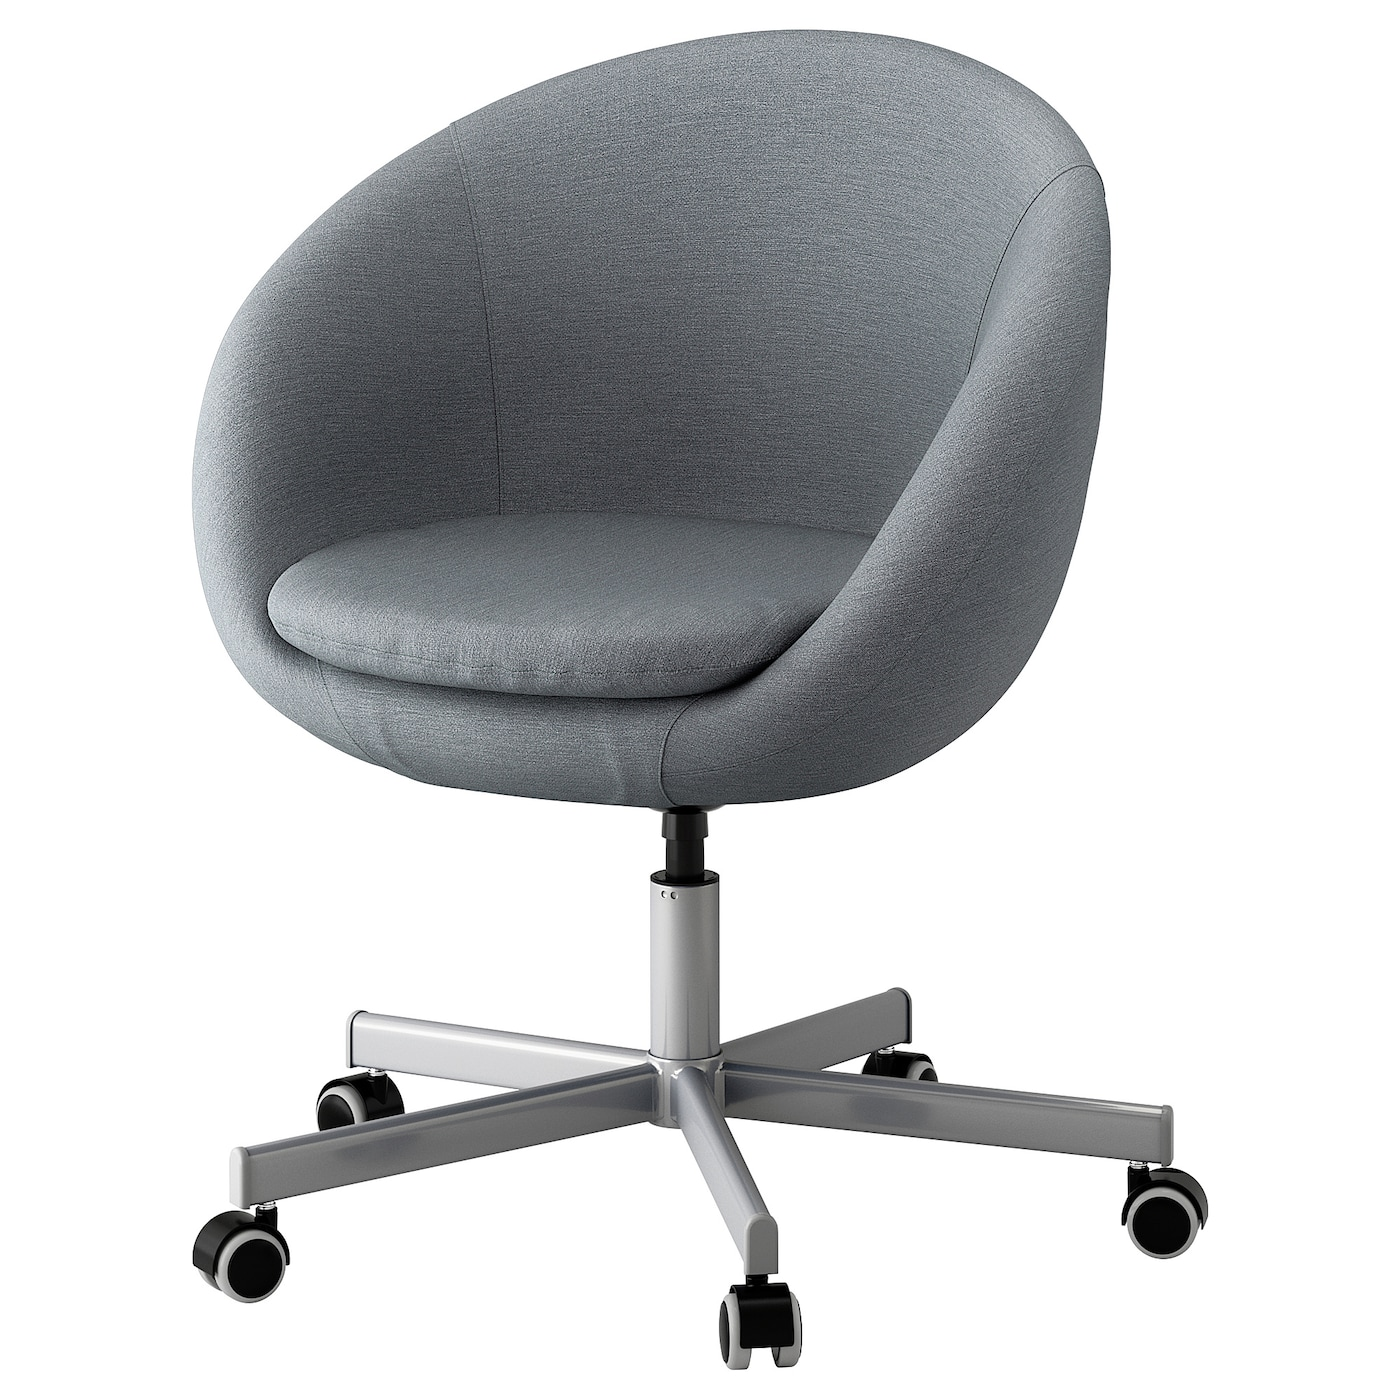 IKEA SKRUVSTA swivel chair You sit comfortably since the chair is adjustable in height.  sc 1 st  Ikea & SKRUVSTA Swivel chair Flackarp grey - IKEA islam-shia.org